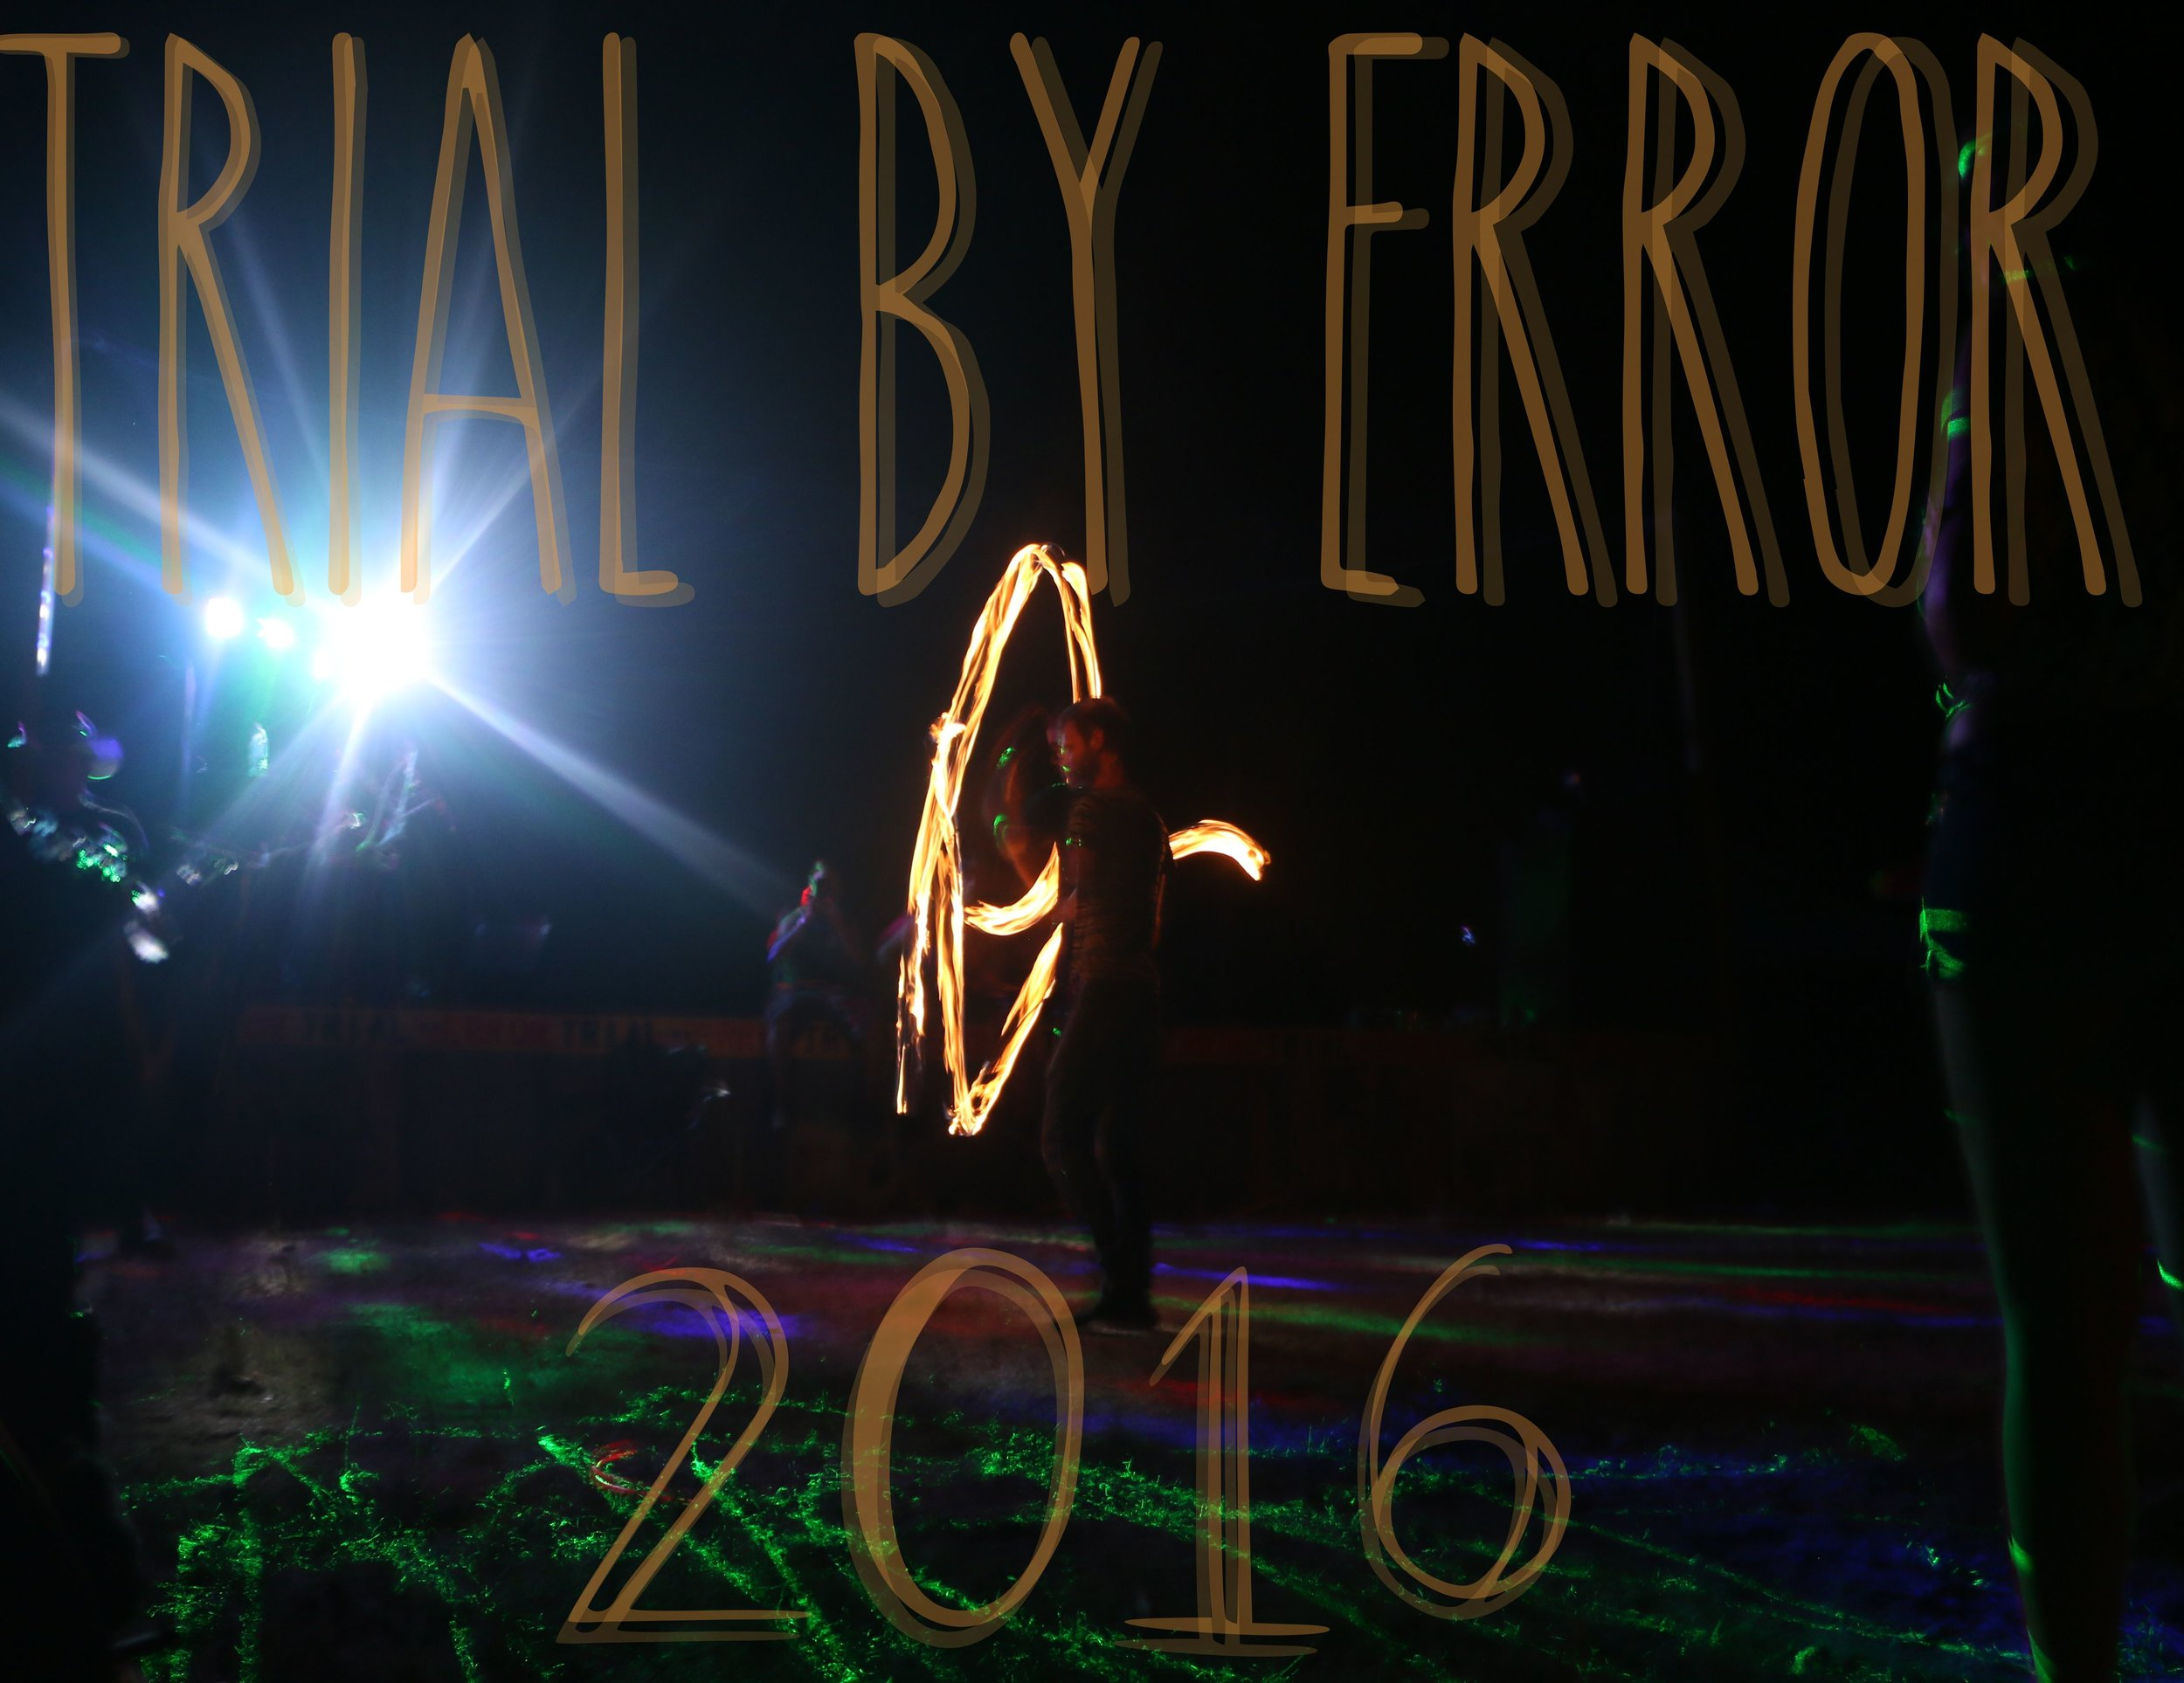 A little bit of  FIREY FUN  at the late night dance party of  Trial By Error  '16